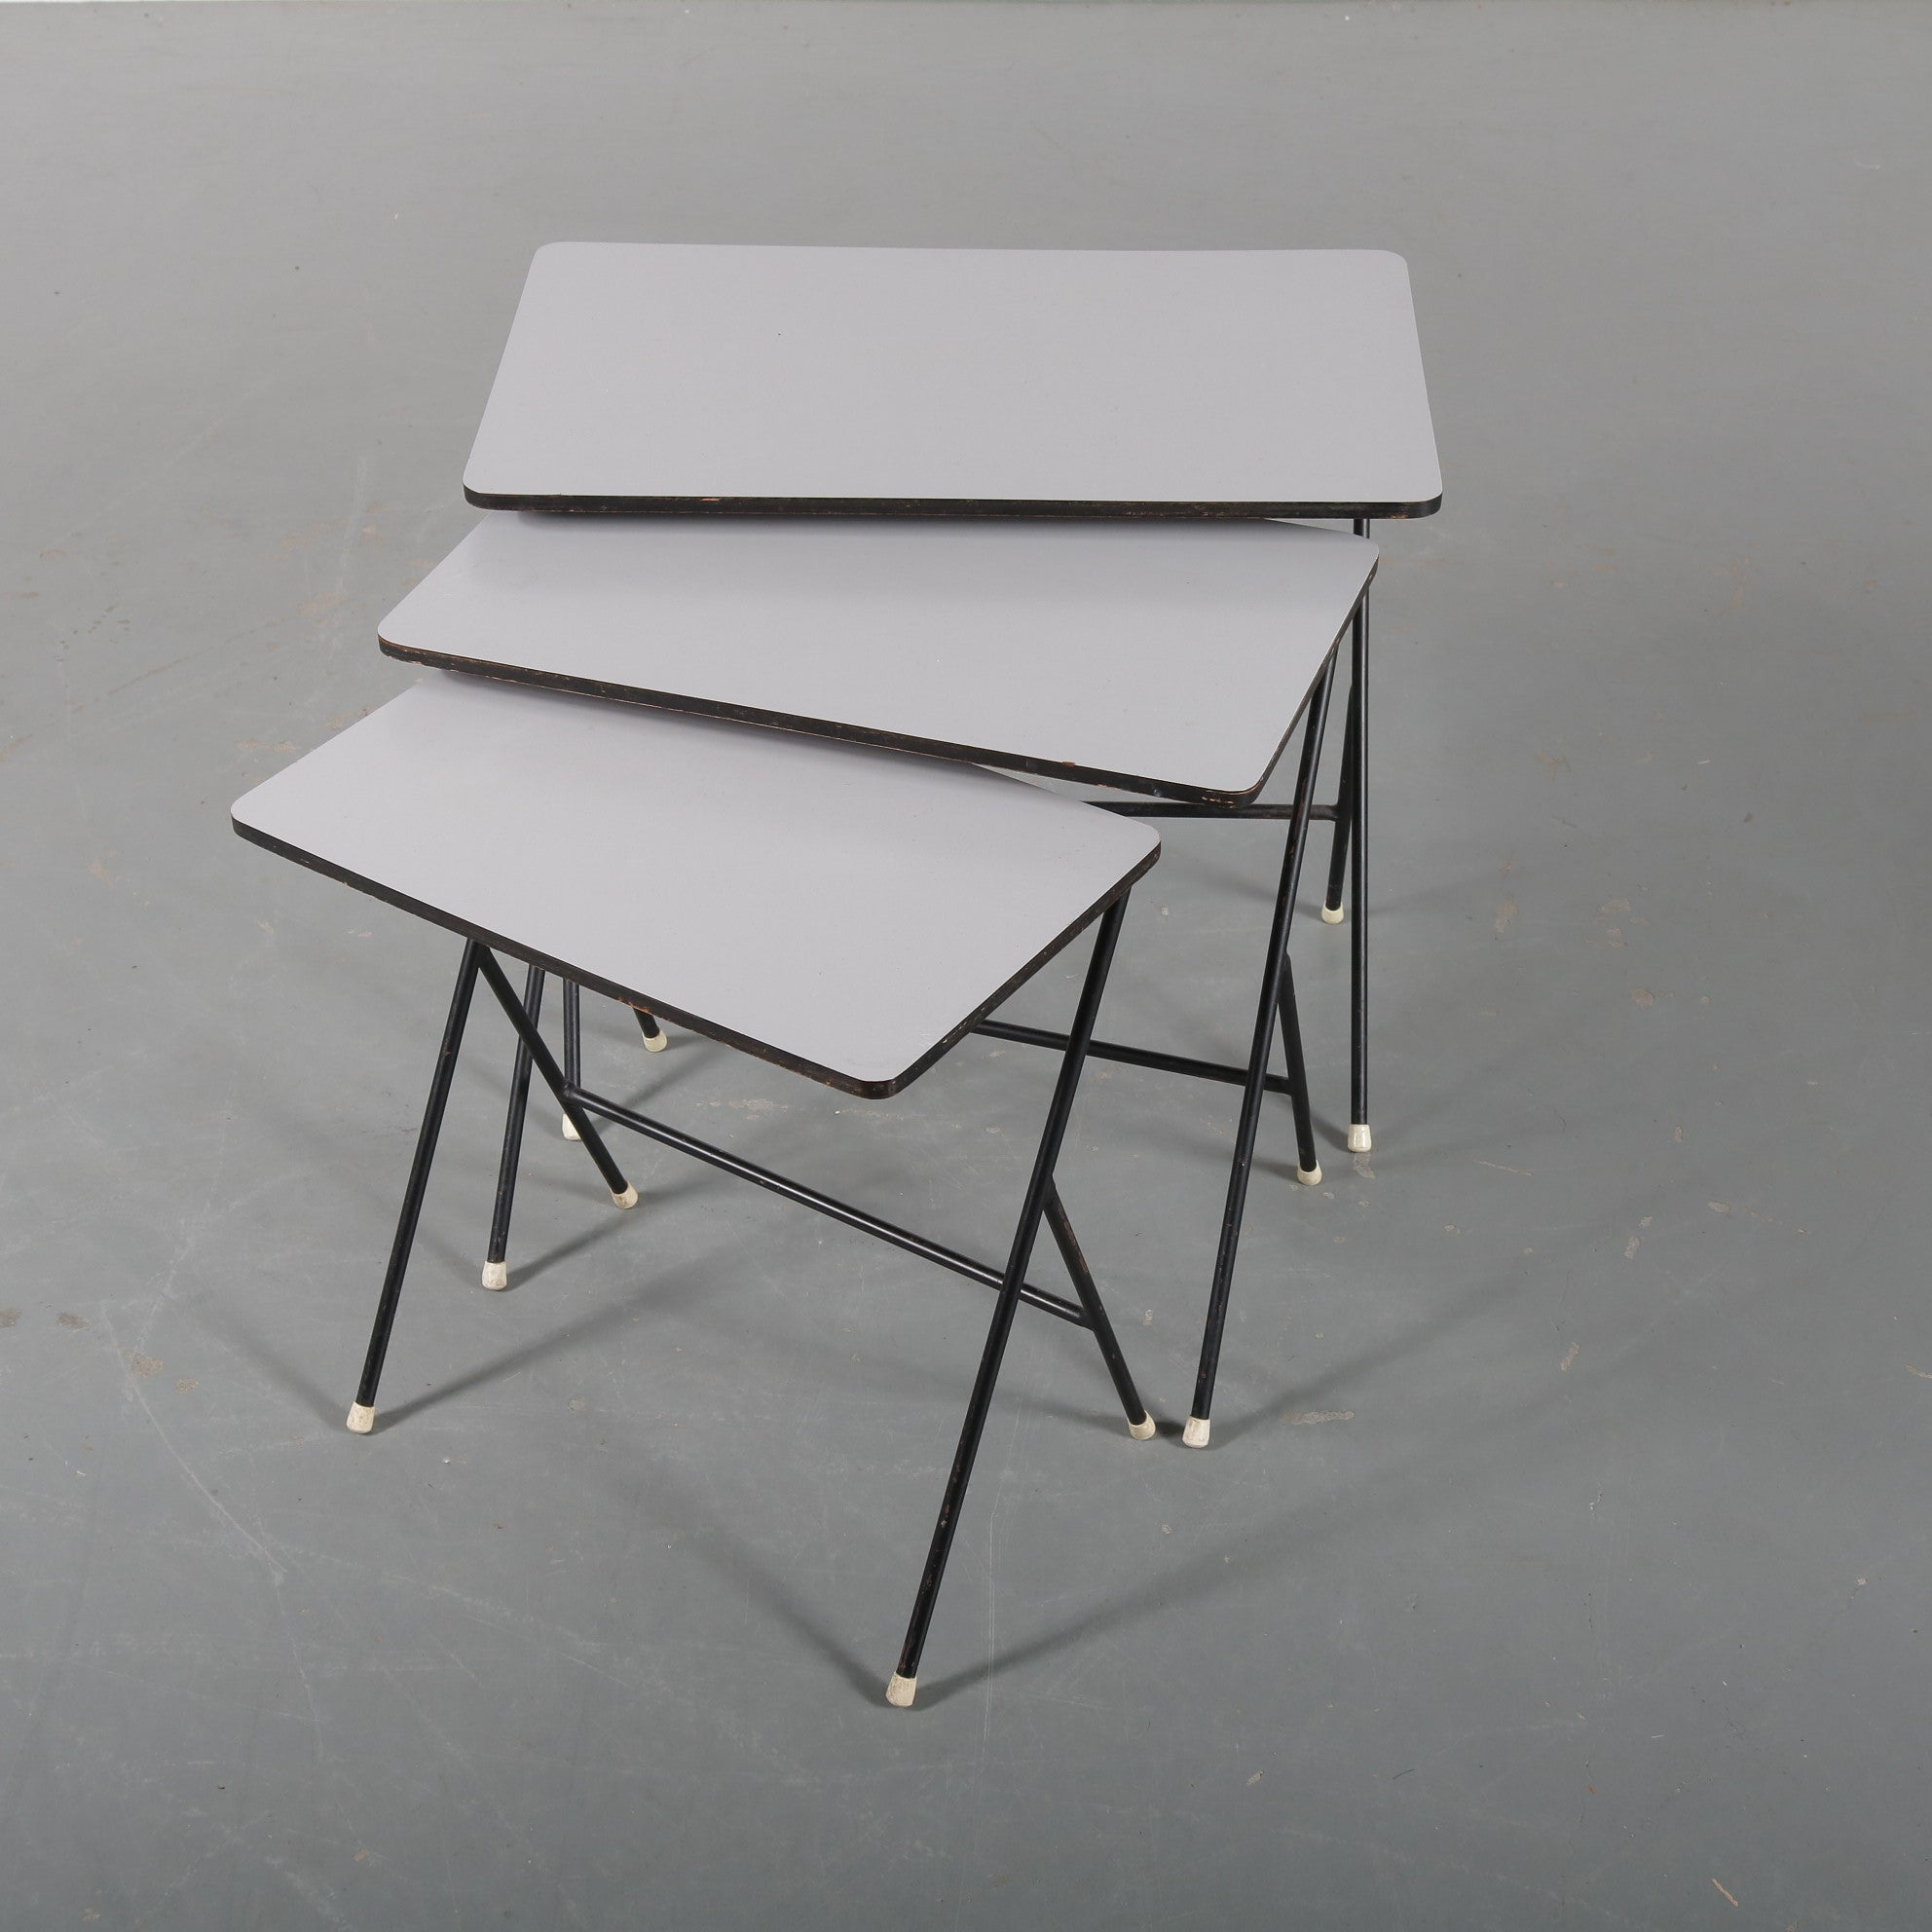 Tweedehands design 1950s Nesting tables by Tjerk Reijenga for Pilastro, the Netherlands